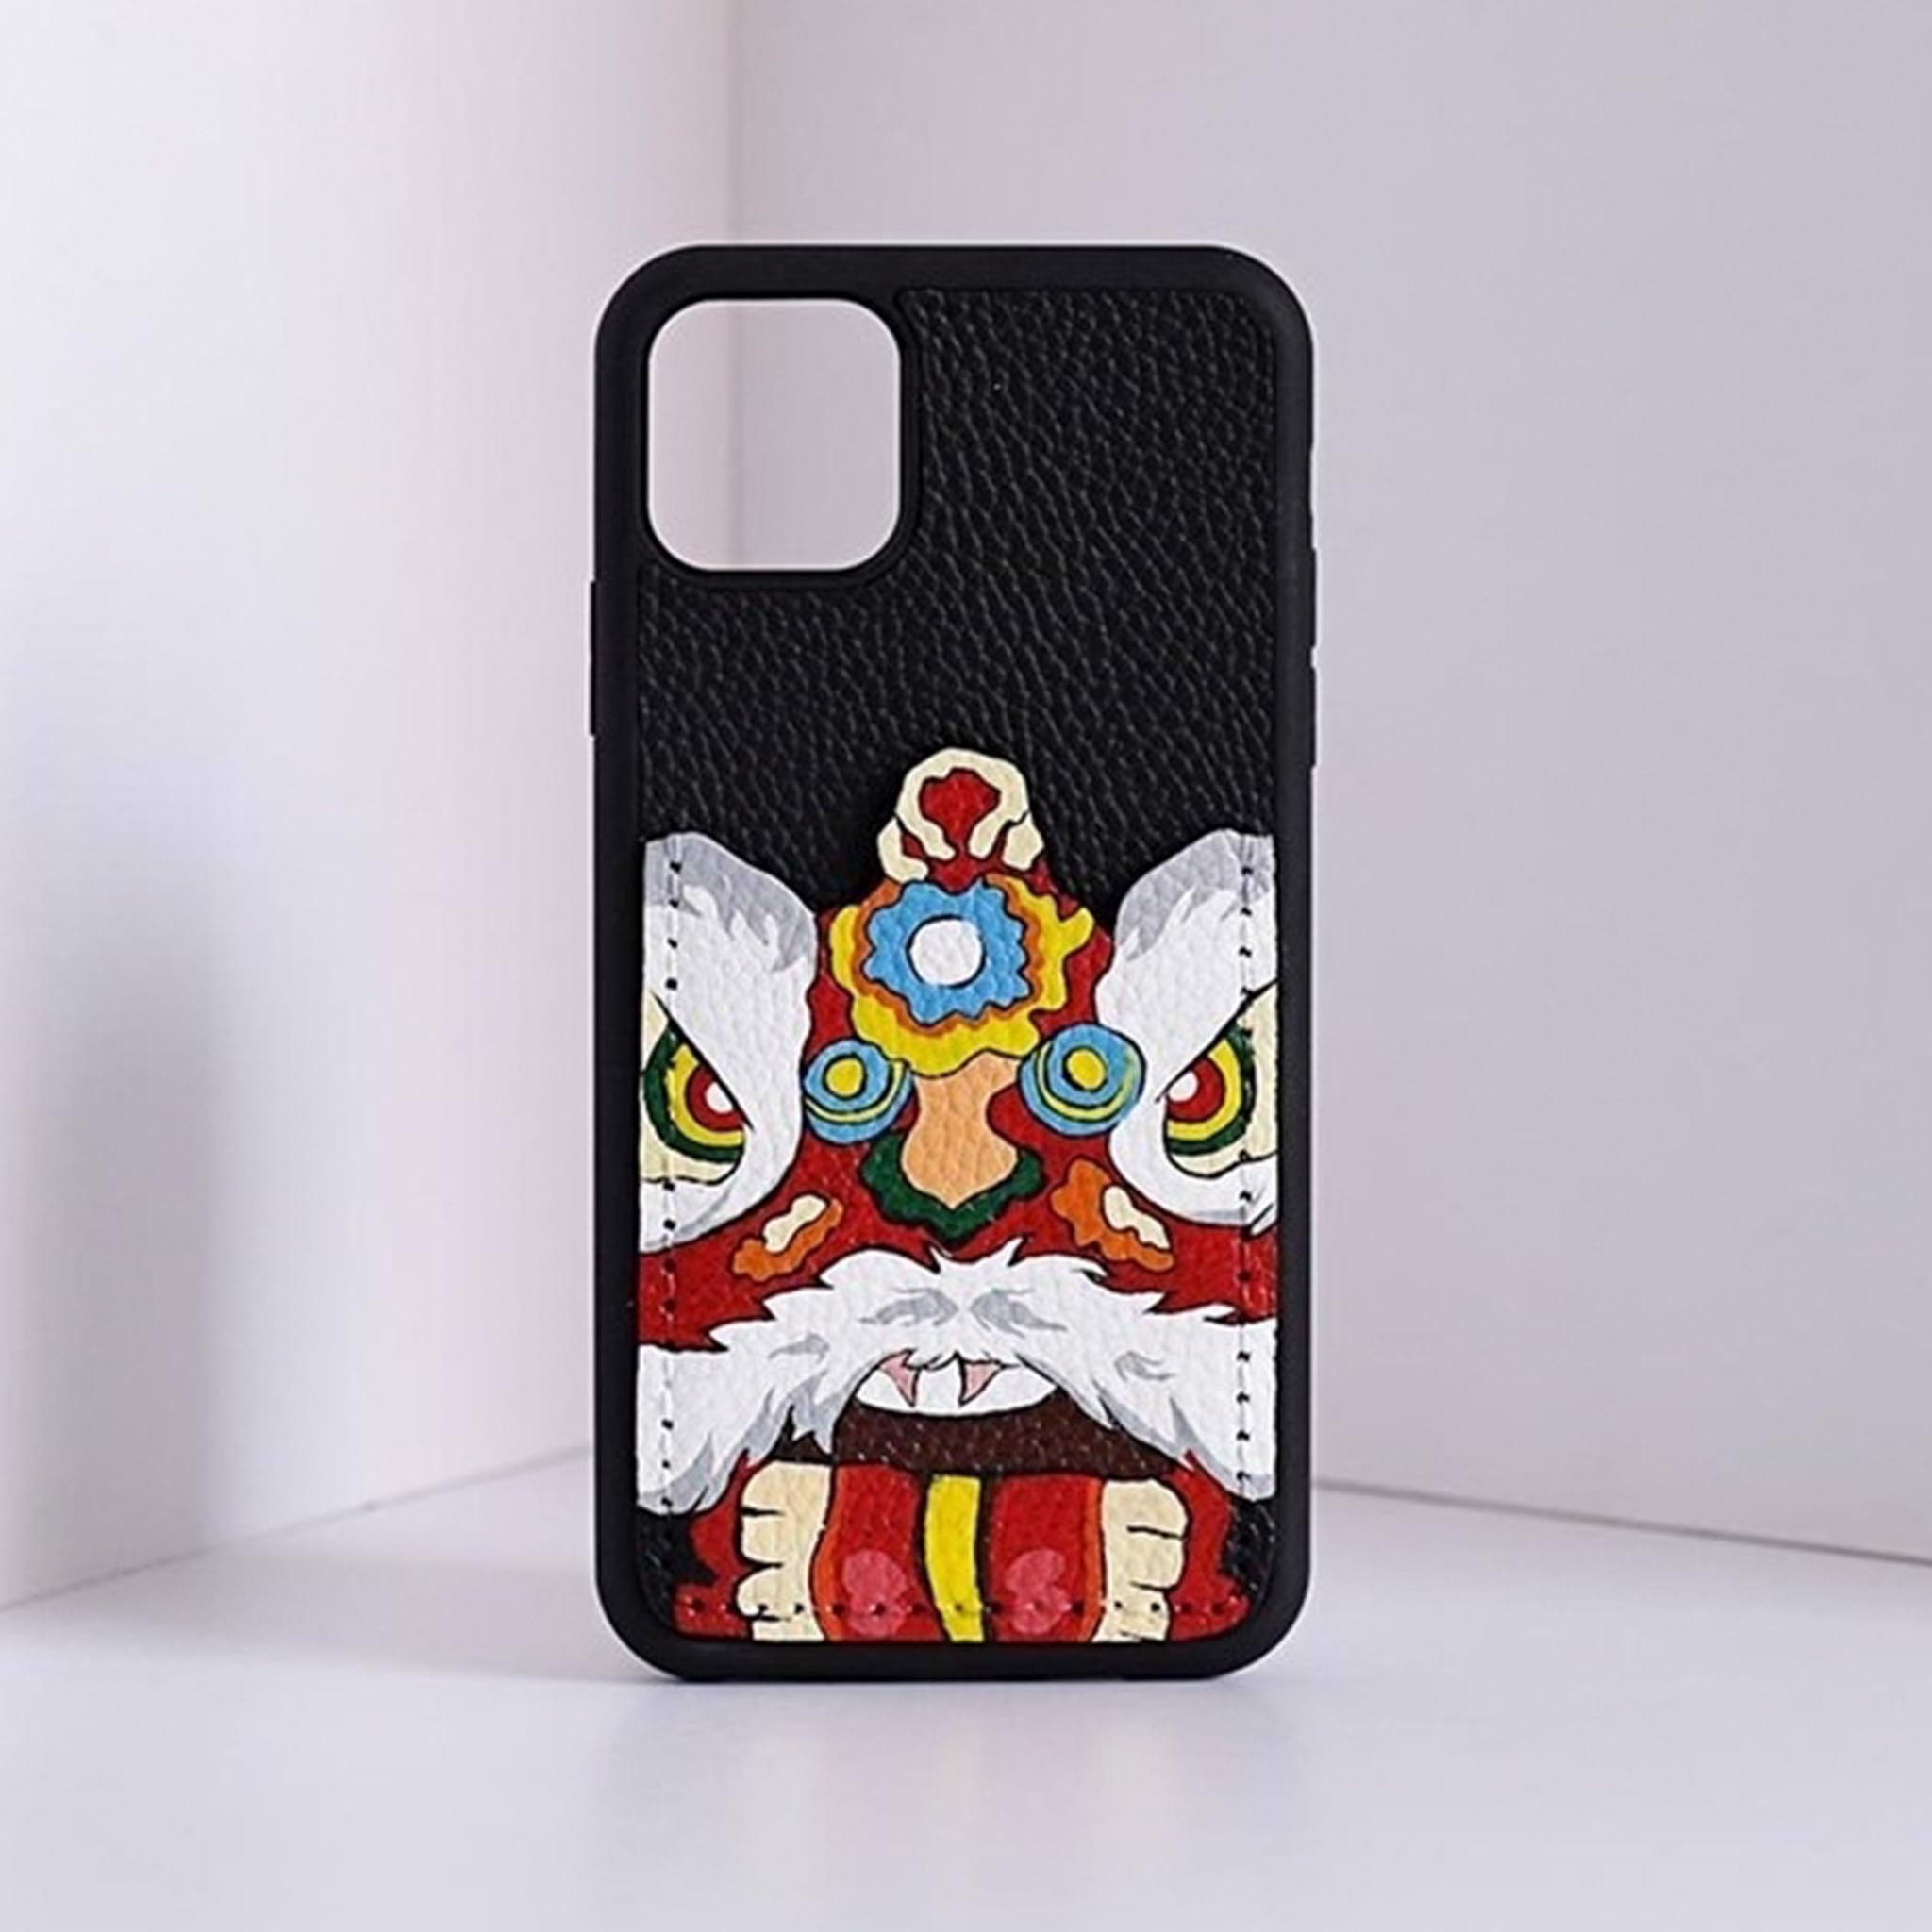 Case iPhone 11 Max De33-Ngăn Lân